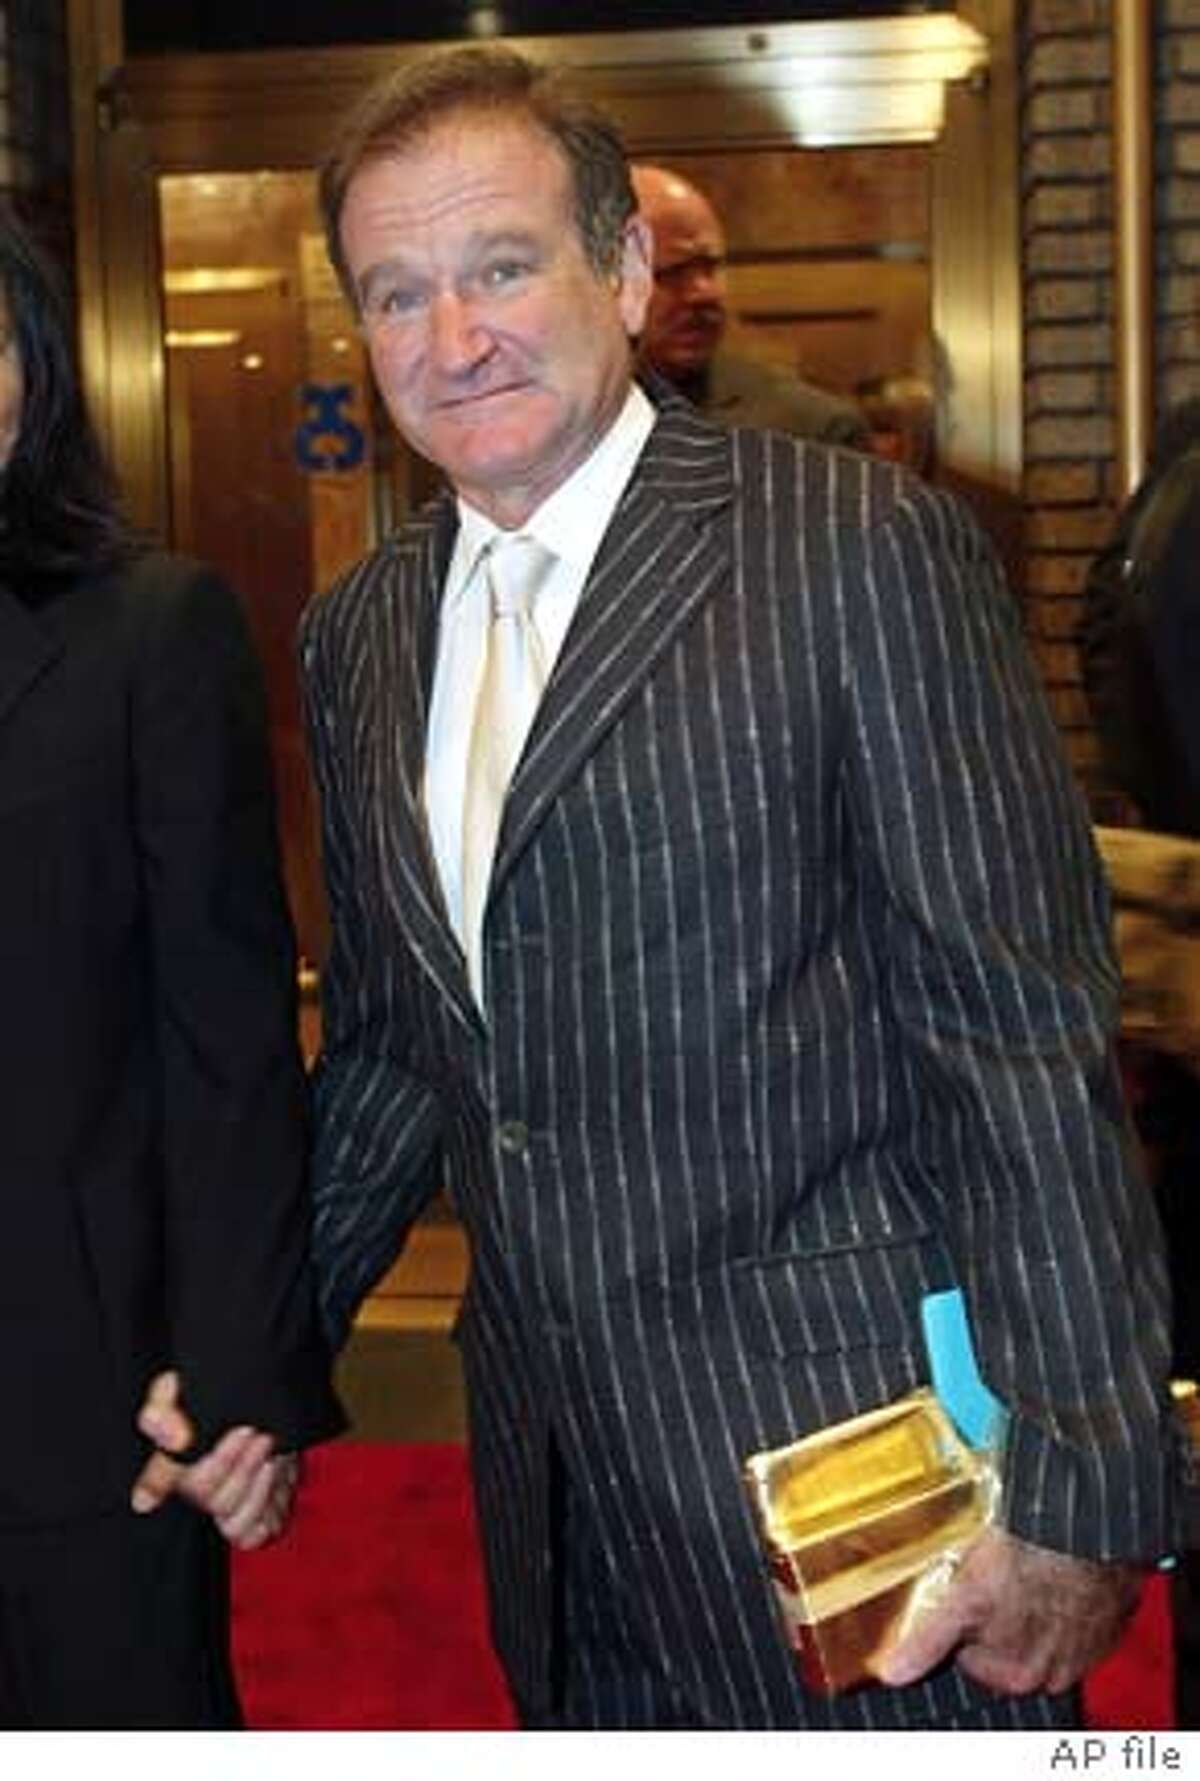 ** FILE ** Actor and comedian Robin Williams arrives at the Broadhurst Theater in Times Square for the opening of Billy Crystal's new show titled 700 Sundays, New York, in this, Dec. 5, 2004, file photo. Williams and his wife, Marsha, offered to donate $80,000 to fix a retaining wall and median strip near their home in San Francisco's Seacliff neighborhood. City supervisor Gerardo Sandoval balked, fearing Williams would be getting preferential treatment. But after city staff assured him that Williams' generosity would free up funds for poorer neighborhoods, Sandoval joined nine colleagues in voting unanimously on Tuesday, July 26, 2005, to accept the comedian's gift. (AP Photo/Stuart Ramson, file)